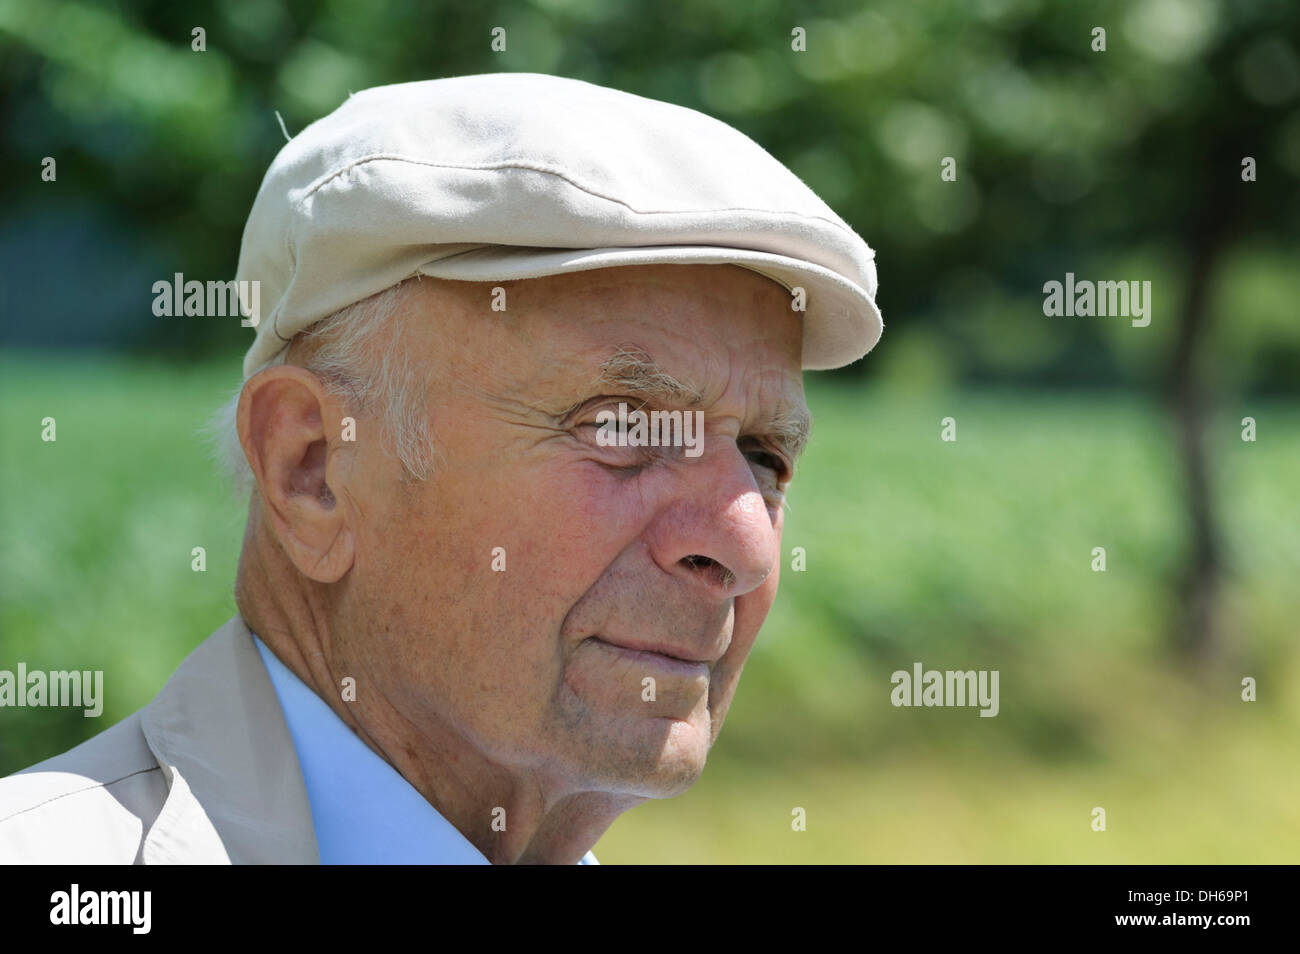 Old man with a peaked cap, Portraet, PublicGround - Stock Image